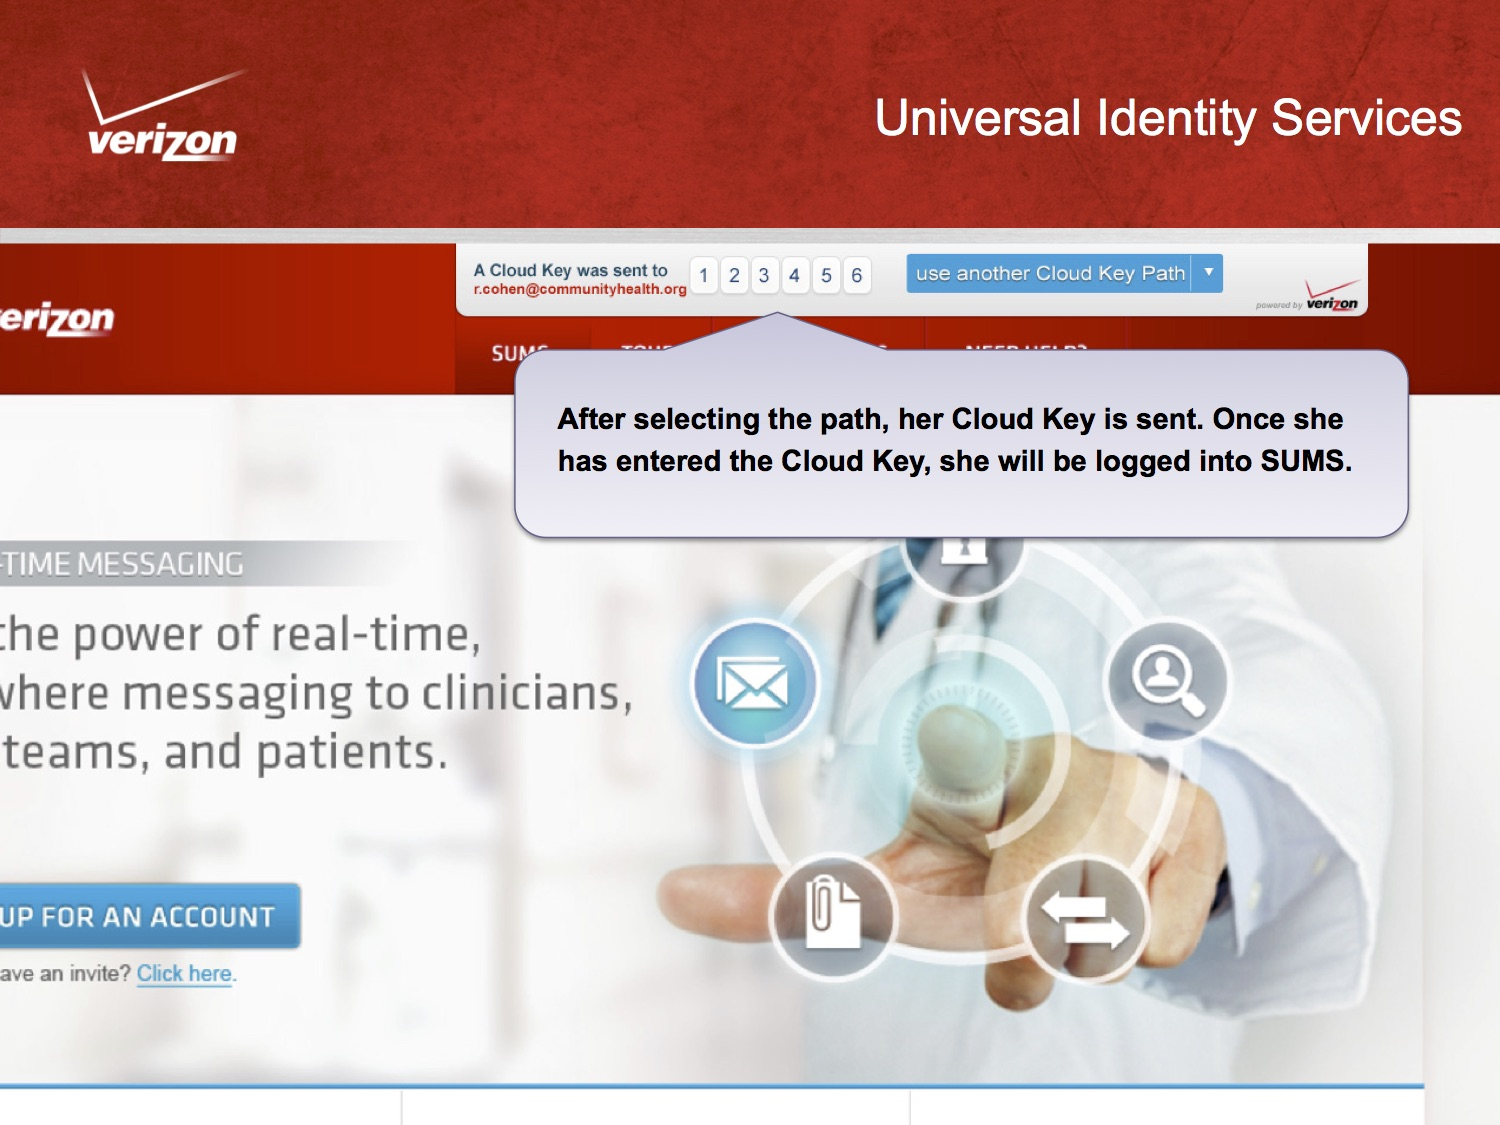 img/verizon-uis/designsbytravis-ideate-Verizon-UIS-HIMSS-Demo18.jpg